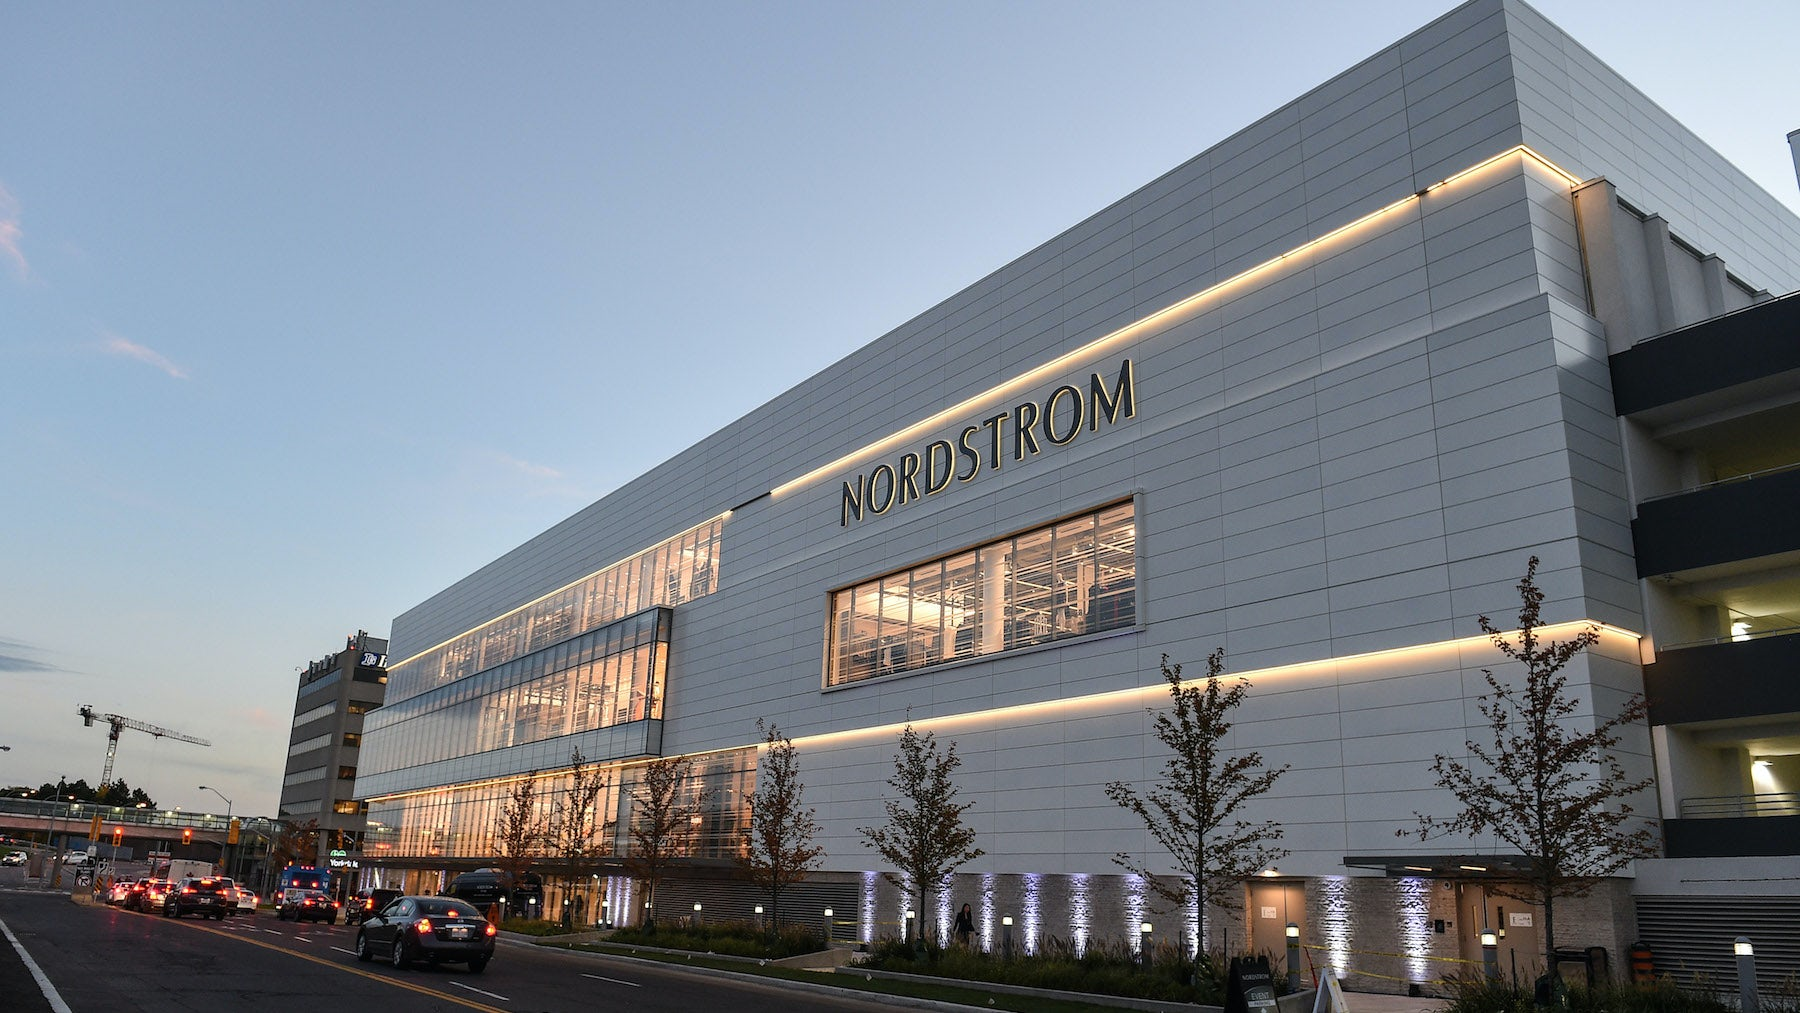 Nordstrom's new store at the Yorkdale Shopping Center, Toronto   Source: Courtesy